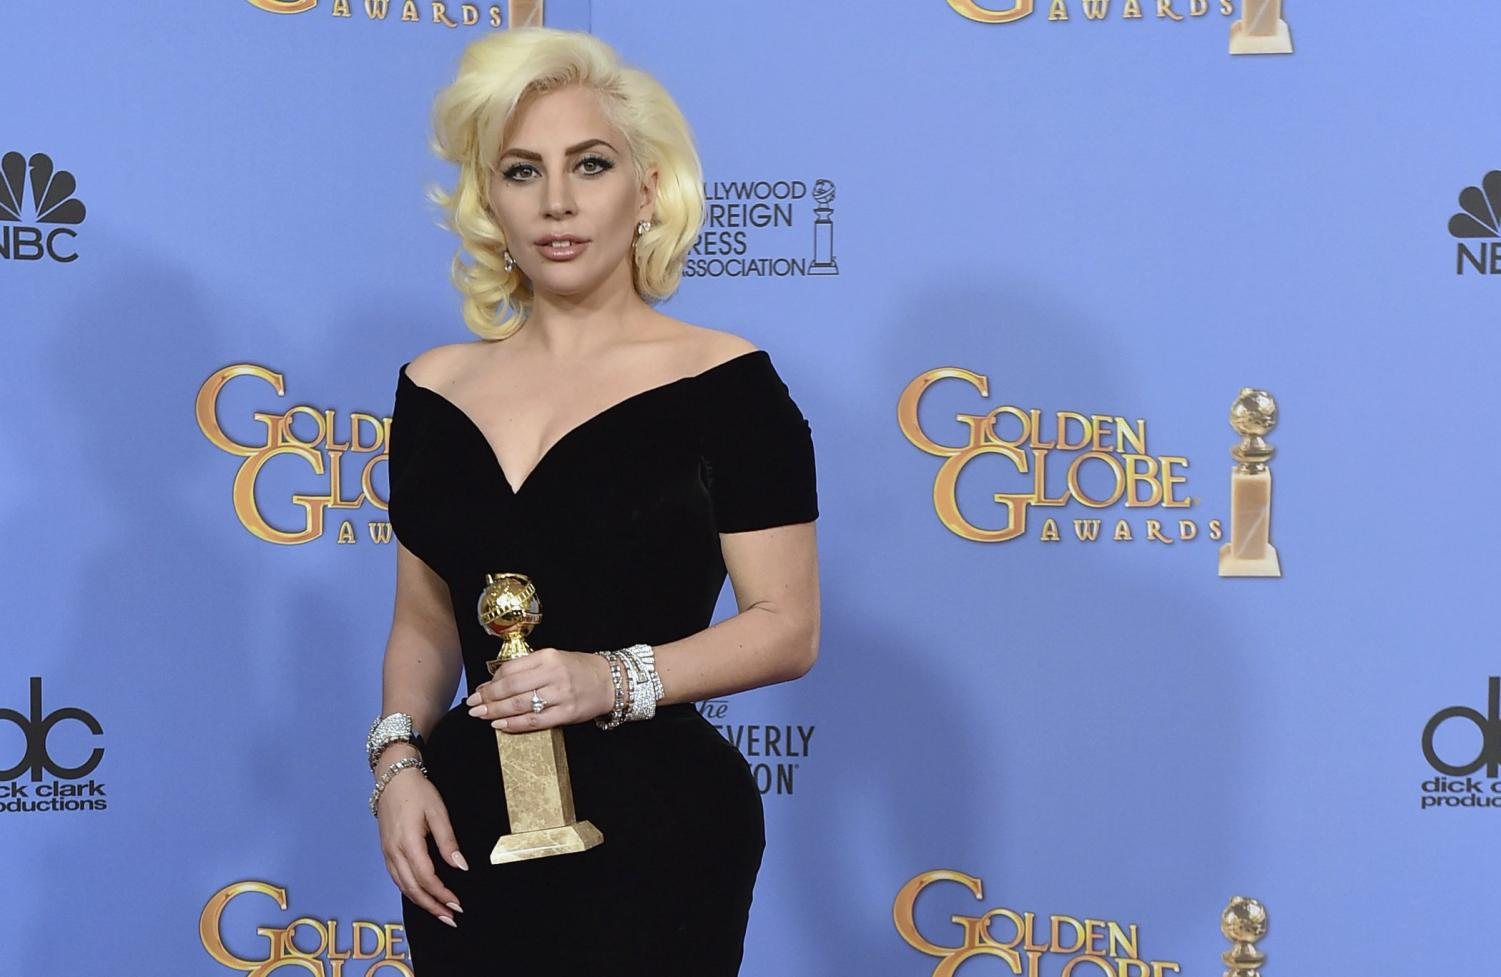 Lady Gaga poses for a picture after winning a Golden Globe Award.